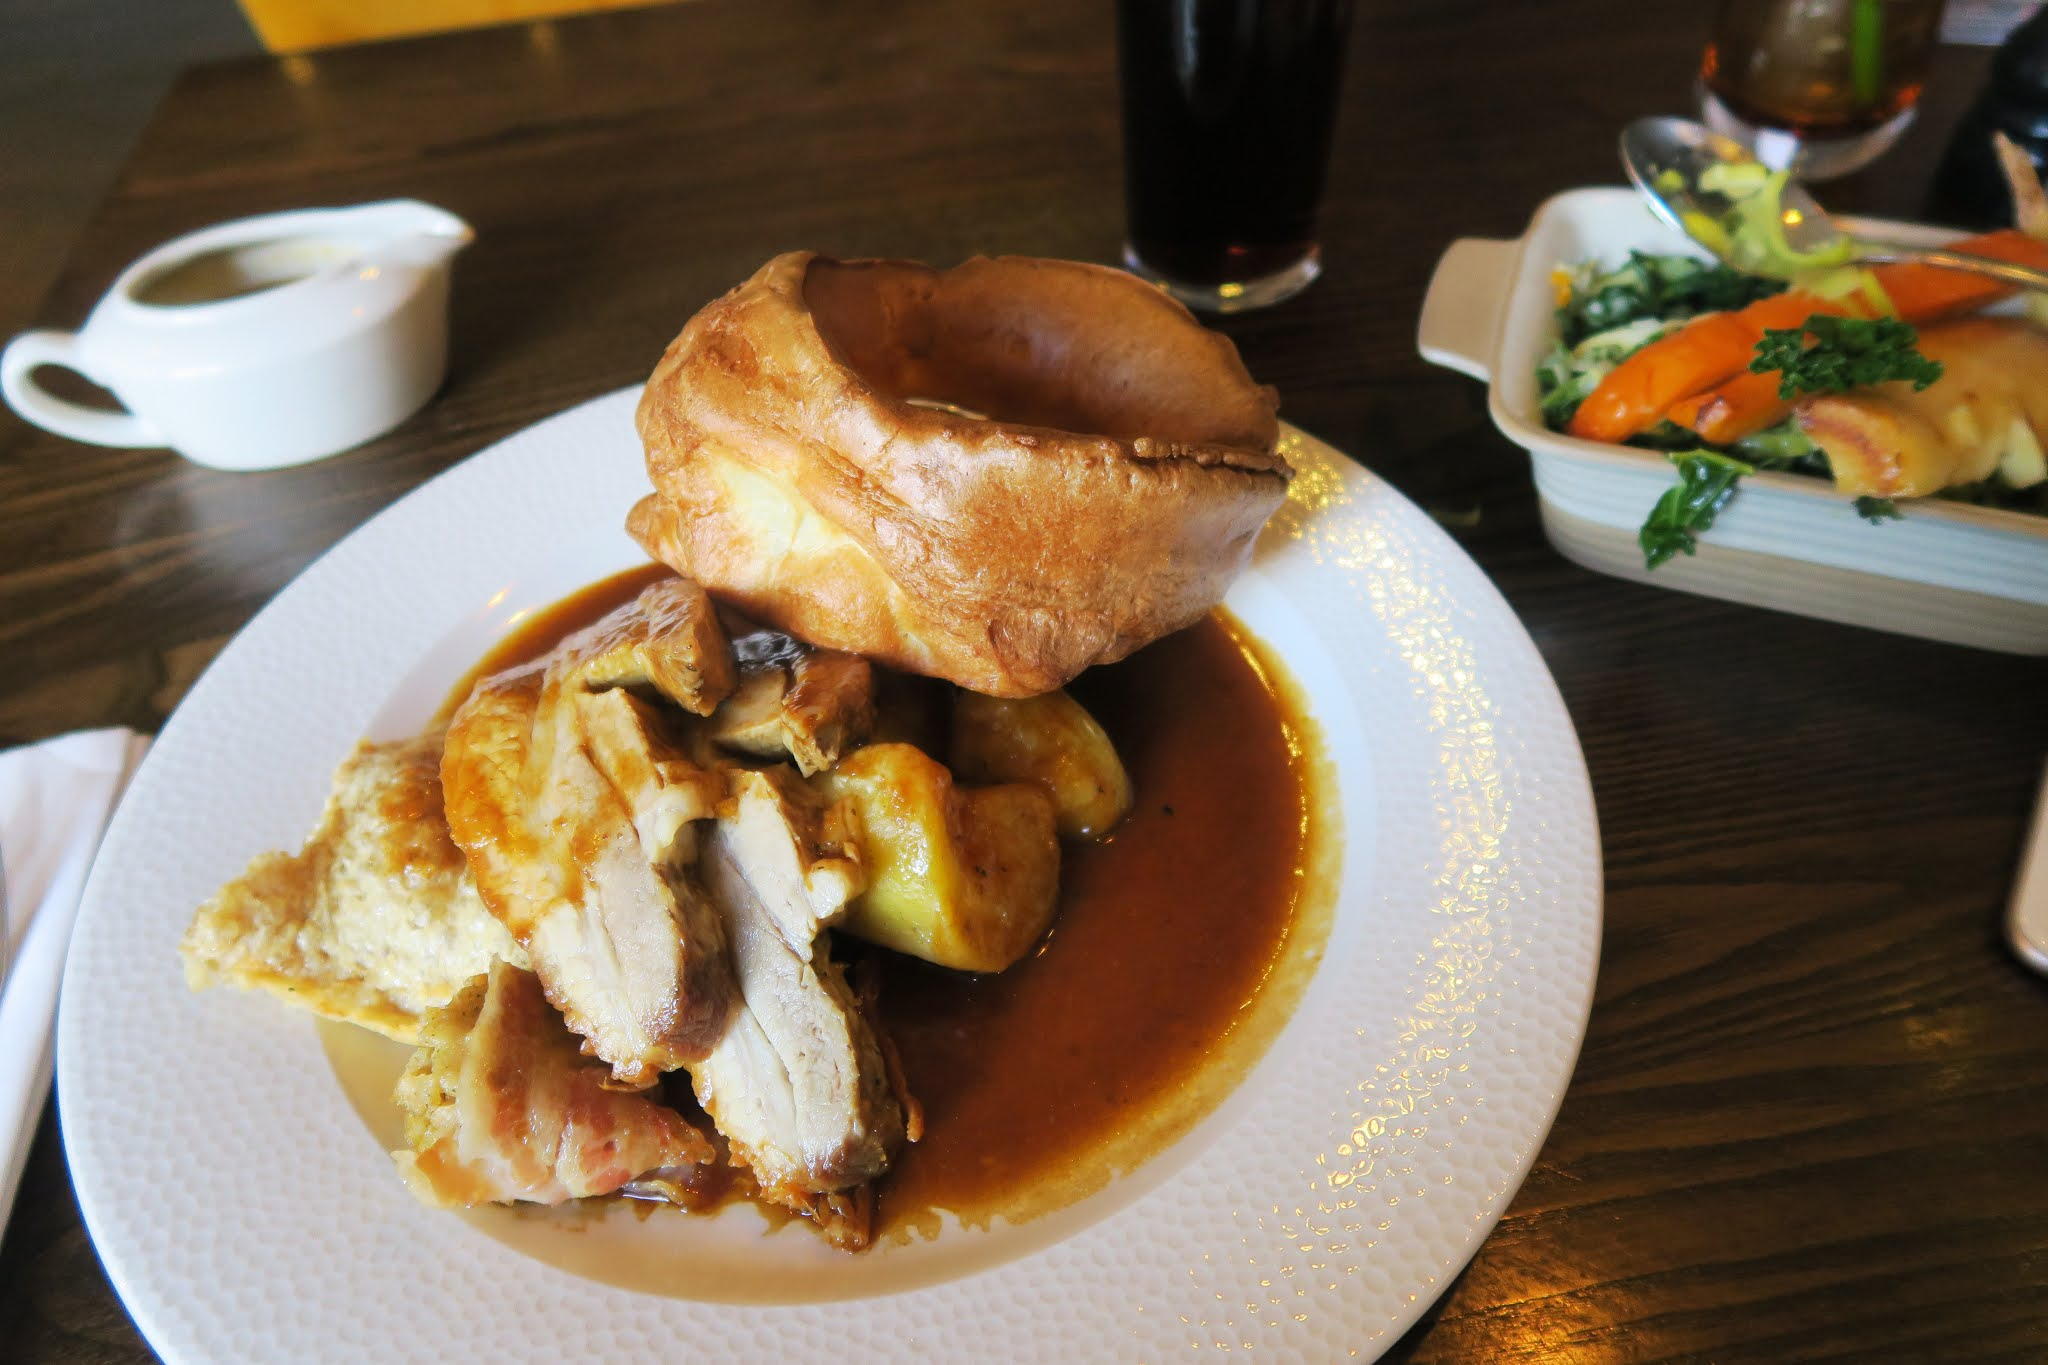 A large plate of meat, roast potatoes, and a large Yorkshire pudding. A bowl of vegetables can be seen in the background.